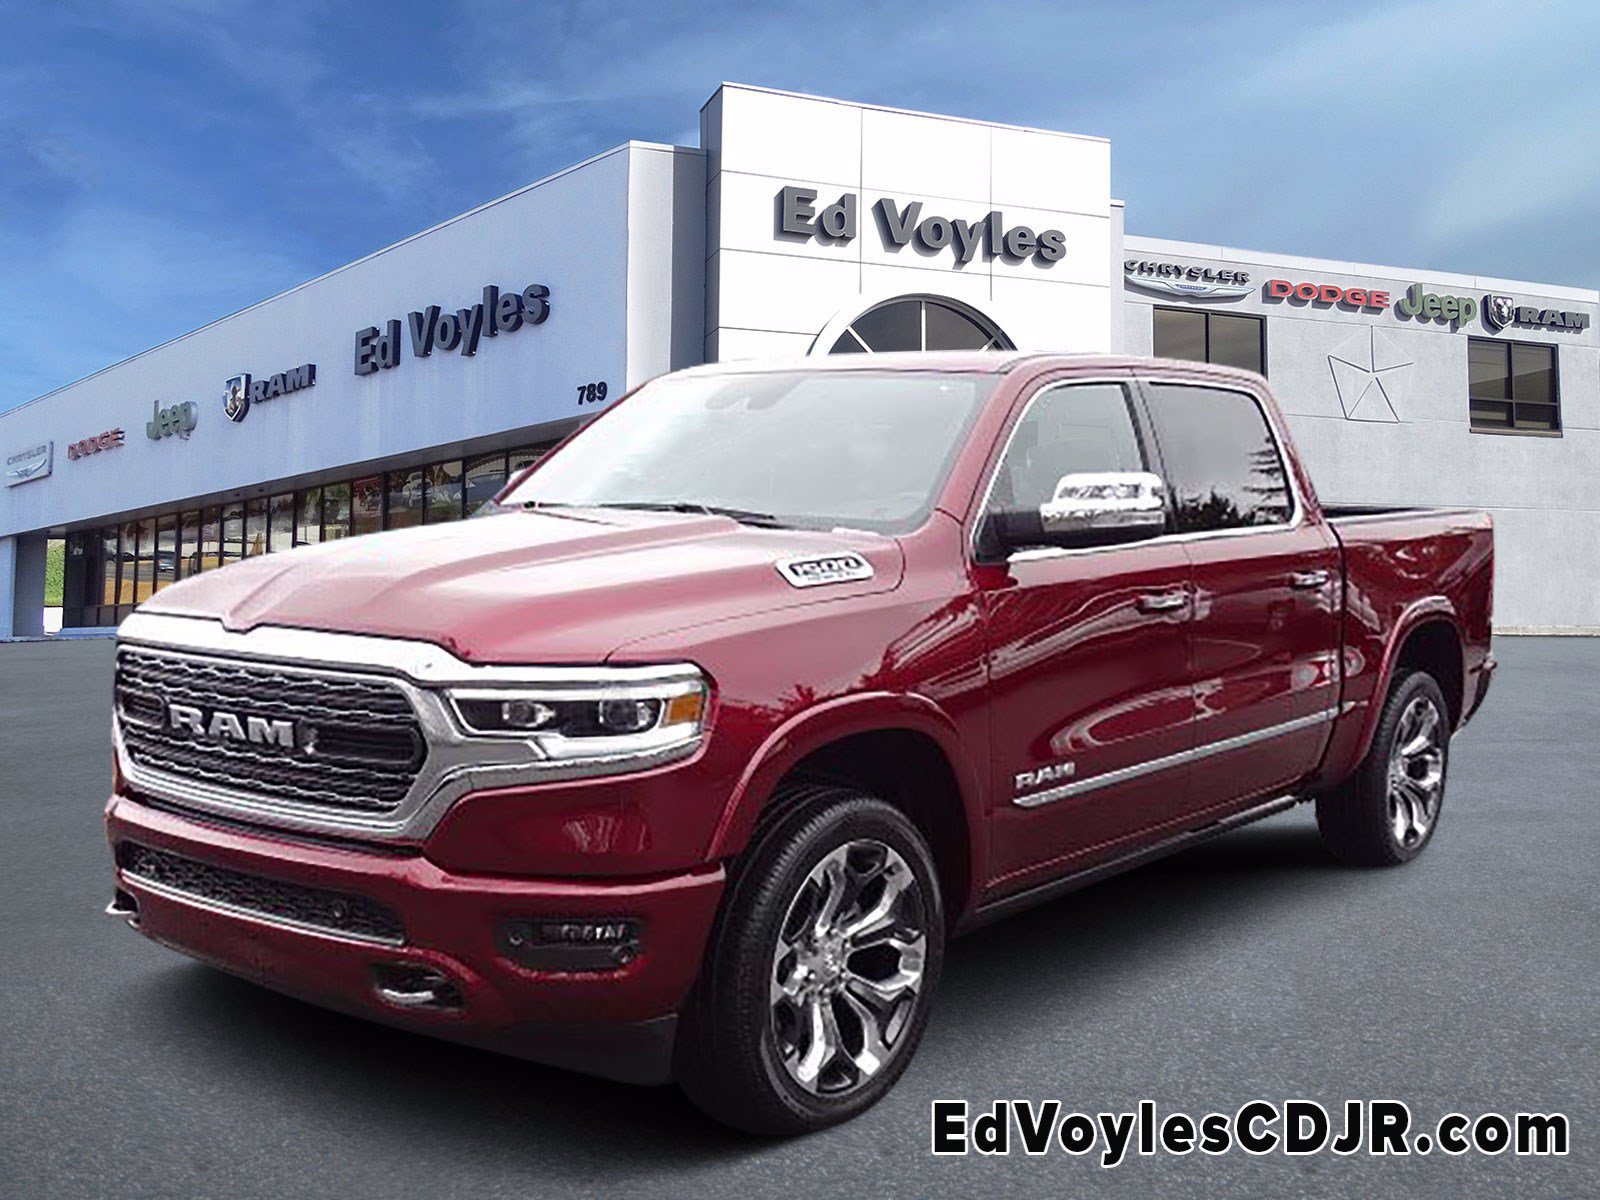 New 2020 Ram 1500 Limited Crew Cab In Marietta 500891 Ed Voyles